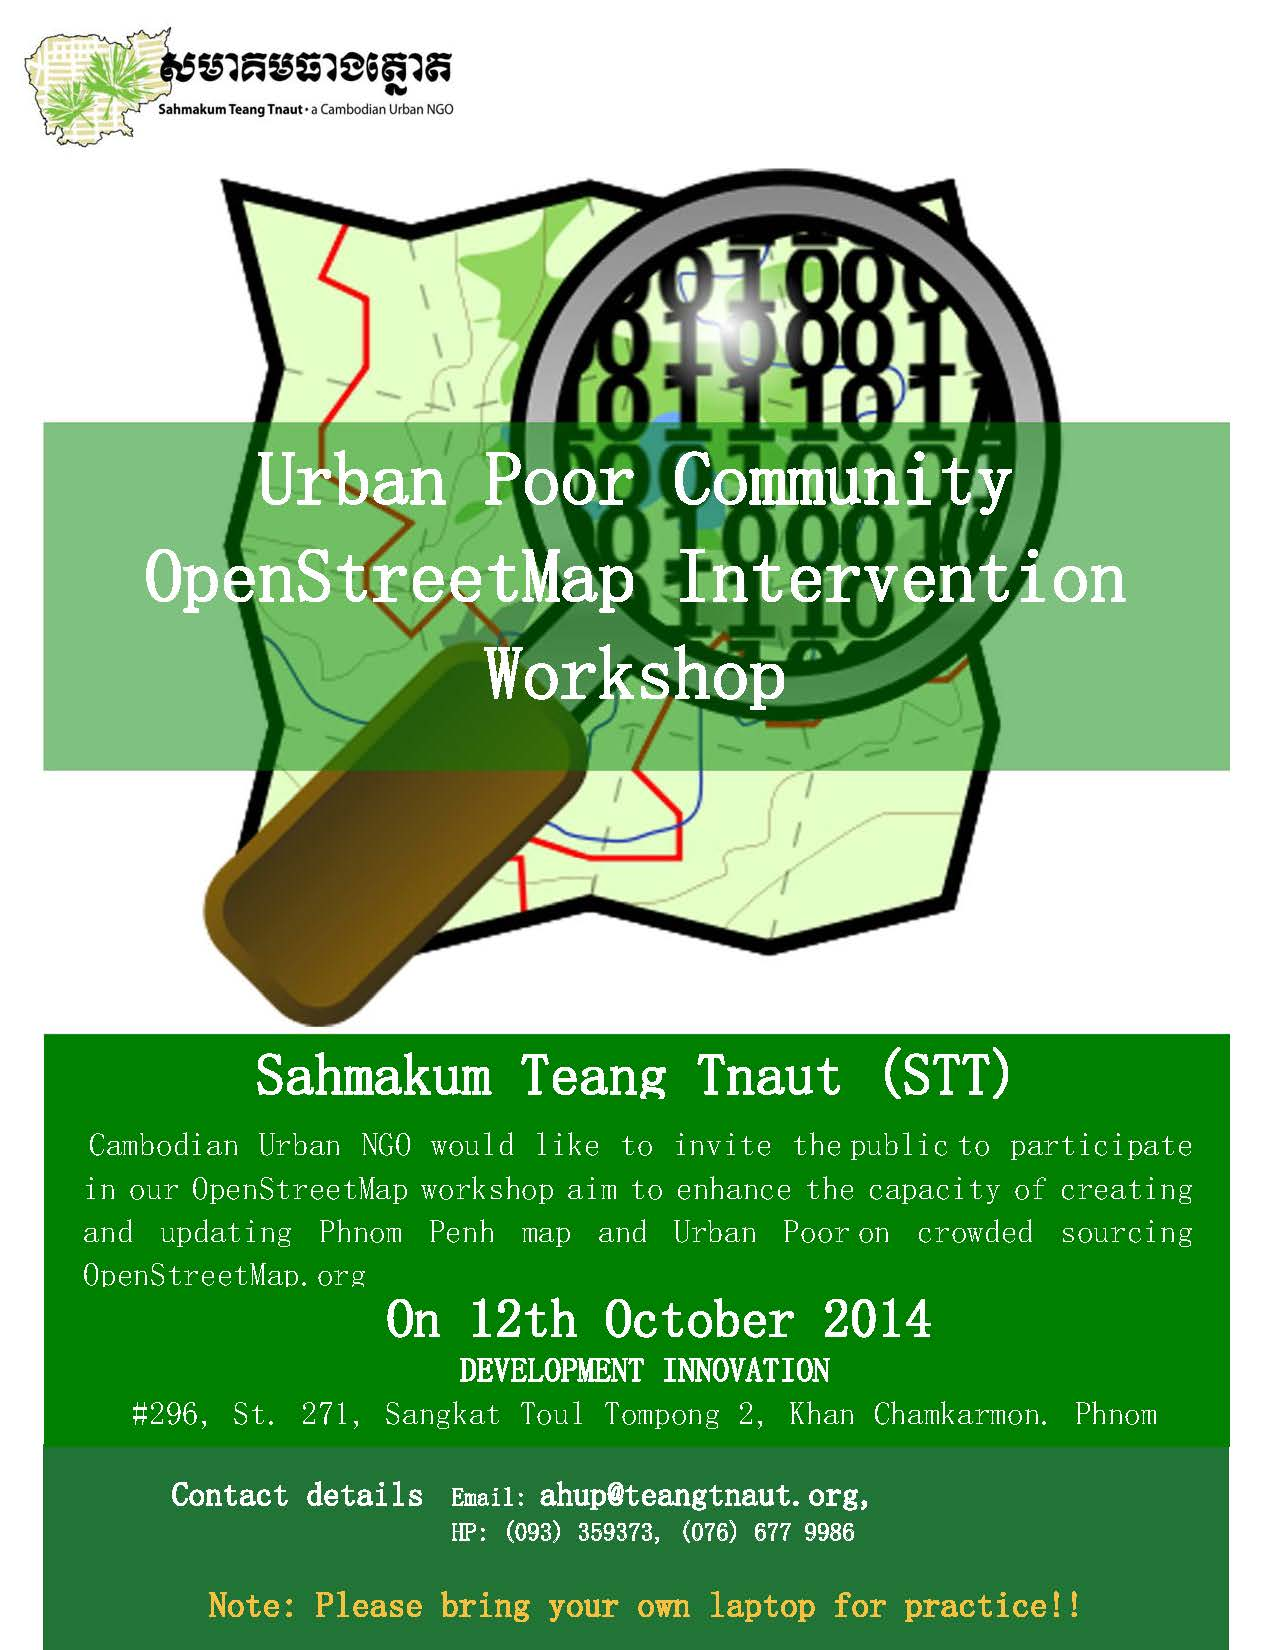 Urban Poor Community OpenStreetMap Intervention Workshop